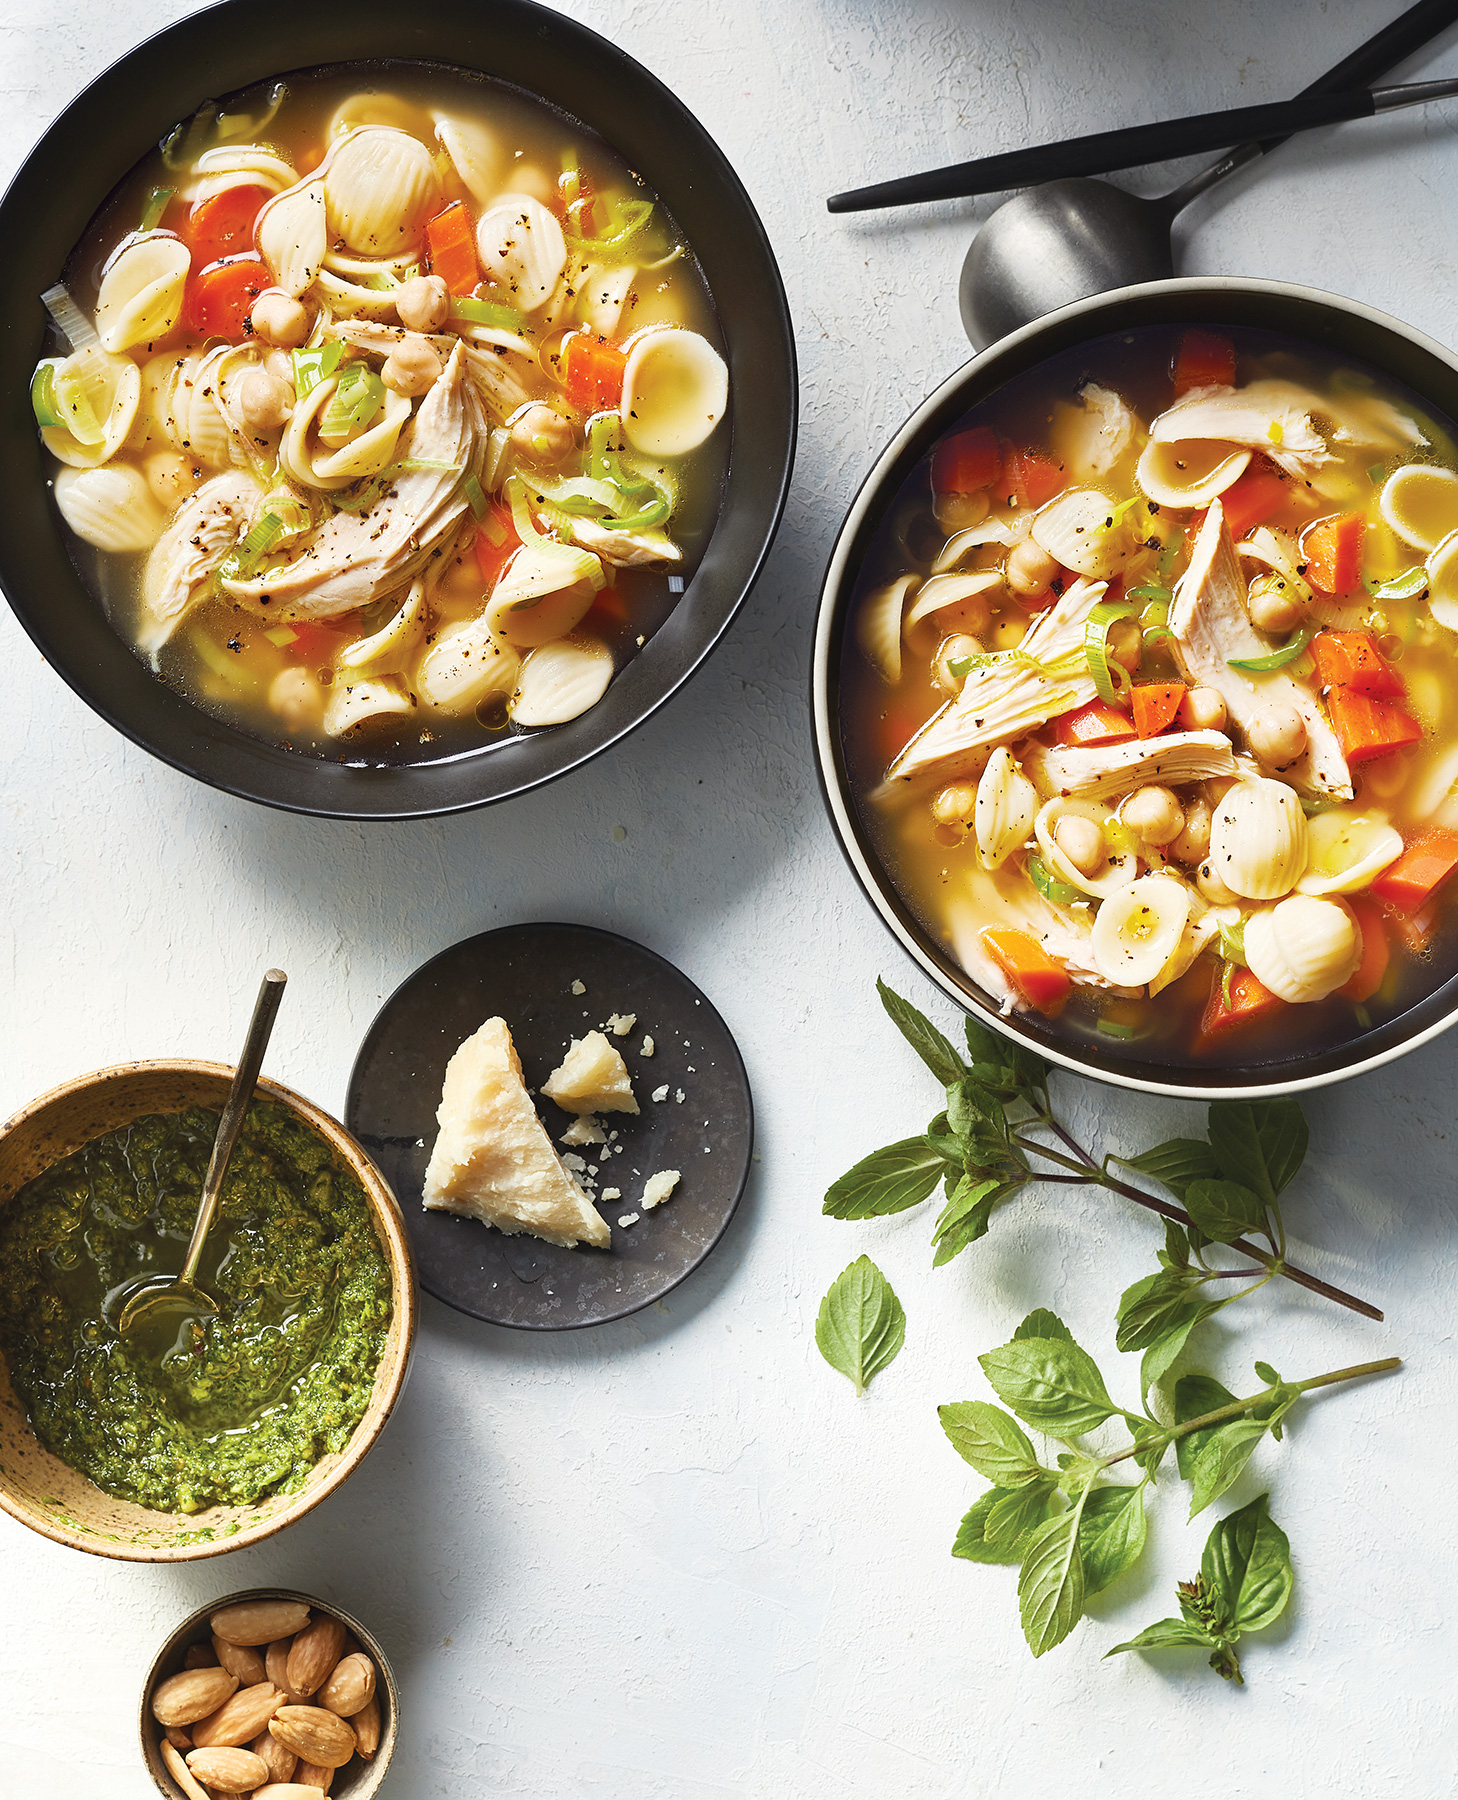 Pasta, Chickpea, and Chicken Soup With Pesto